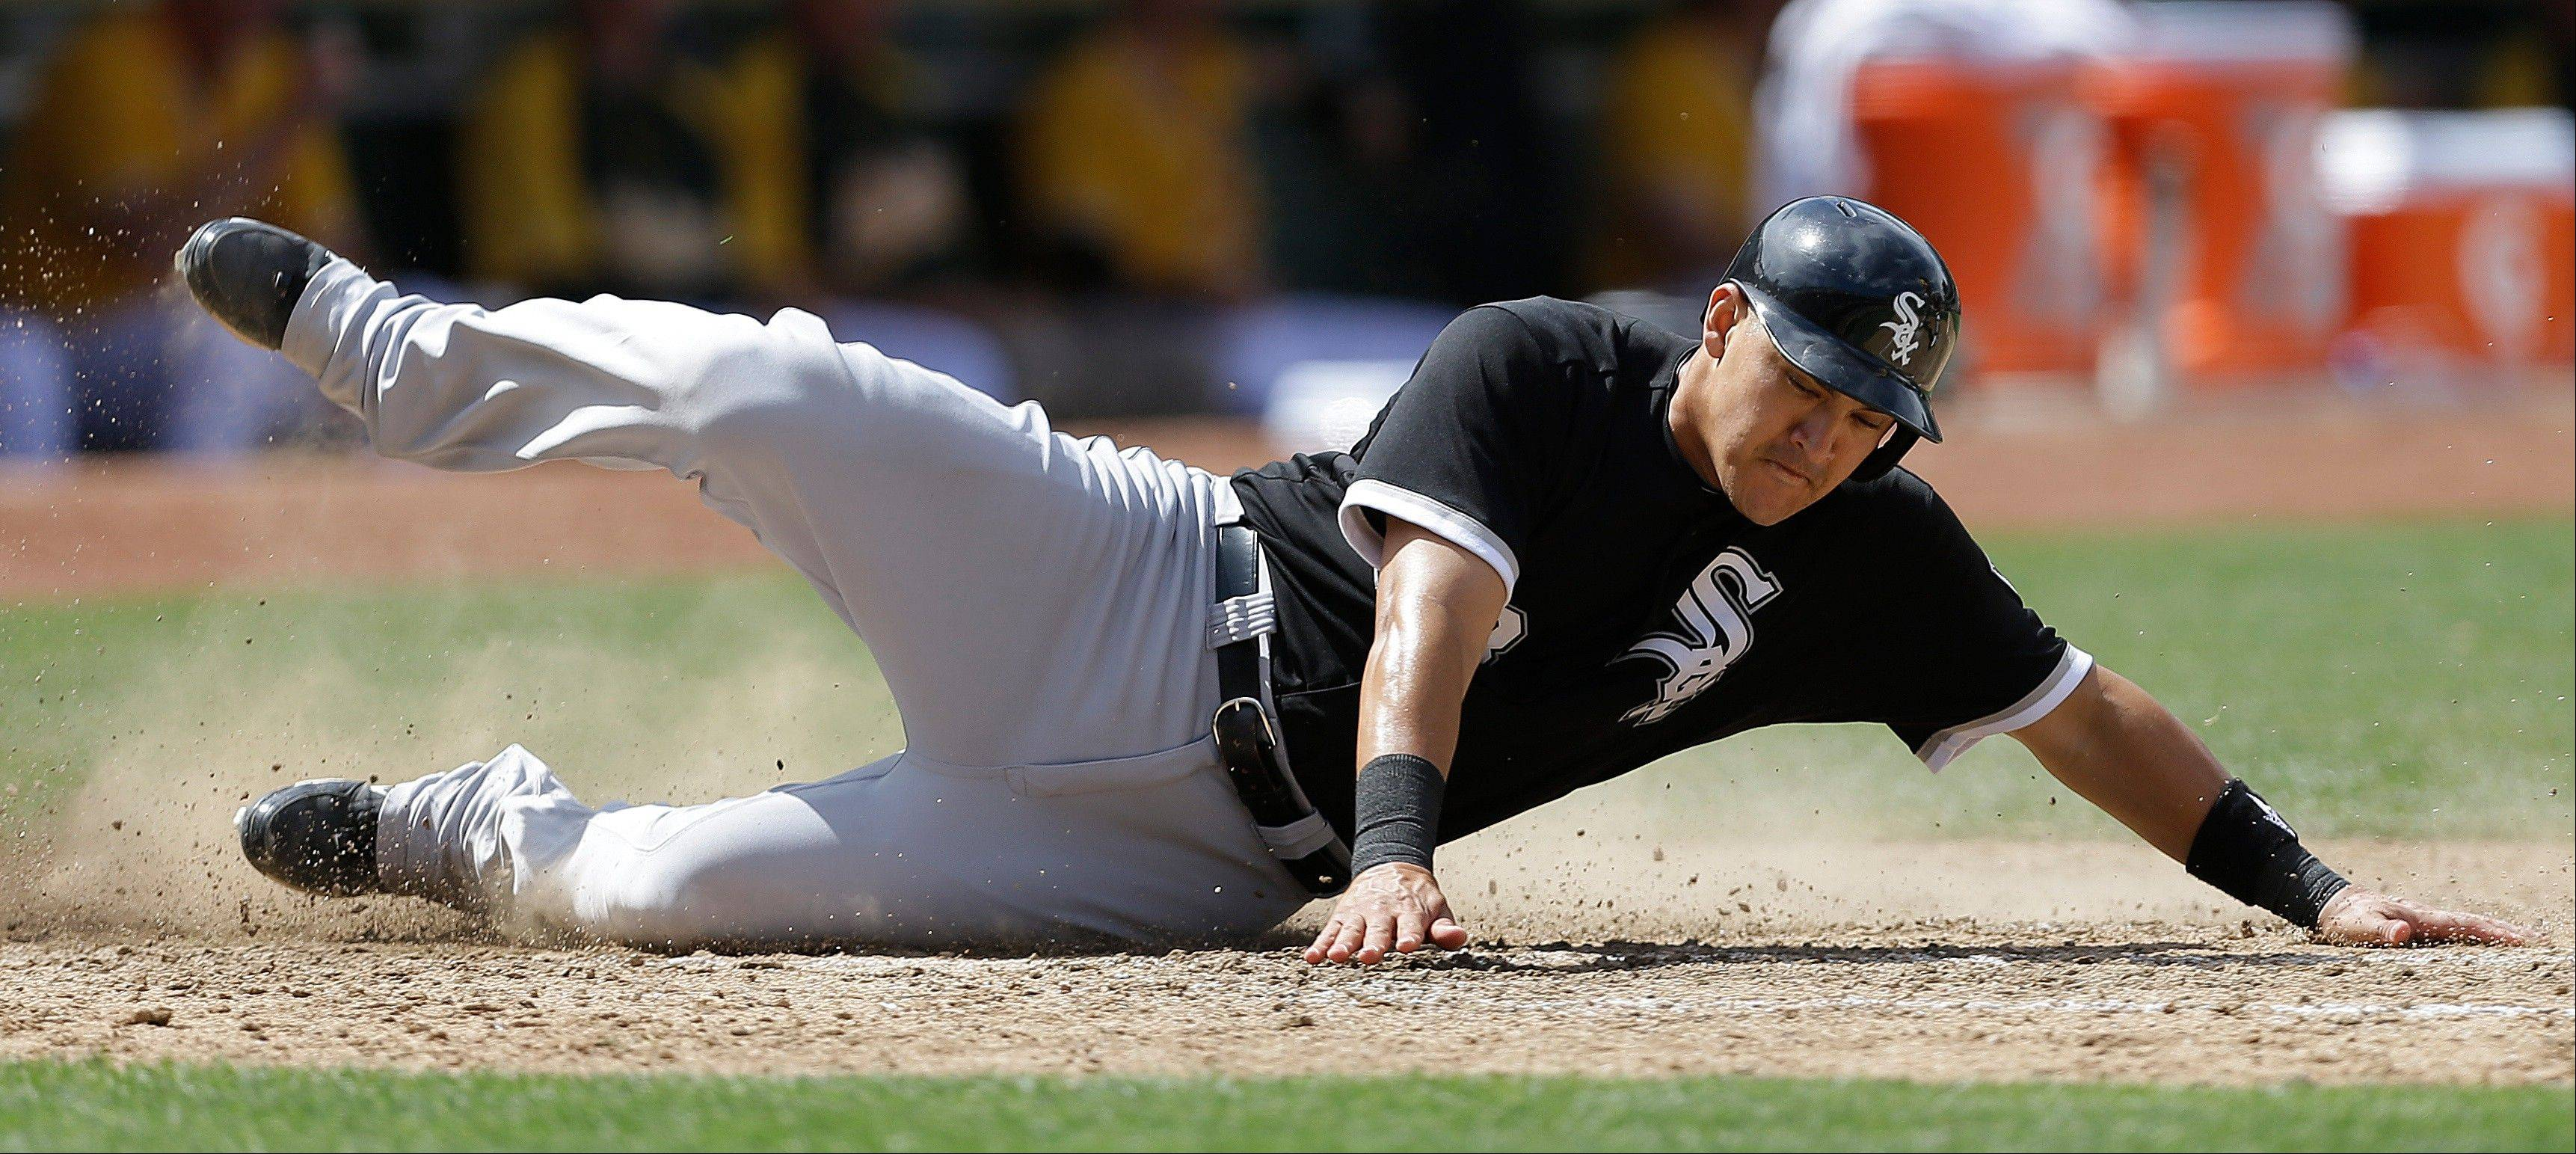 Chicago White Sox's Hector Gimenez slides into home plate to score against the Oakland Athletics in the seventh inning of a baseball game on Saturday, June 1, 2013, in Oakland, Calif. Gimenez scored on a single by Chicago's Alejandro De Aza.